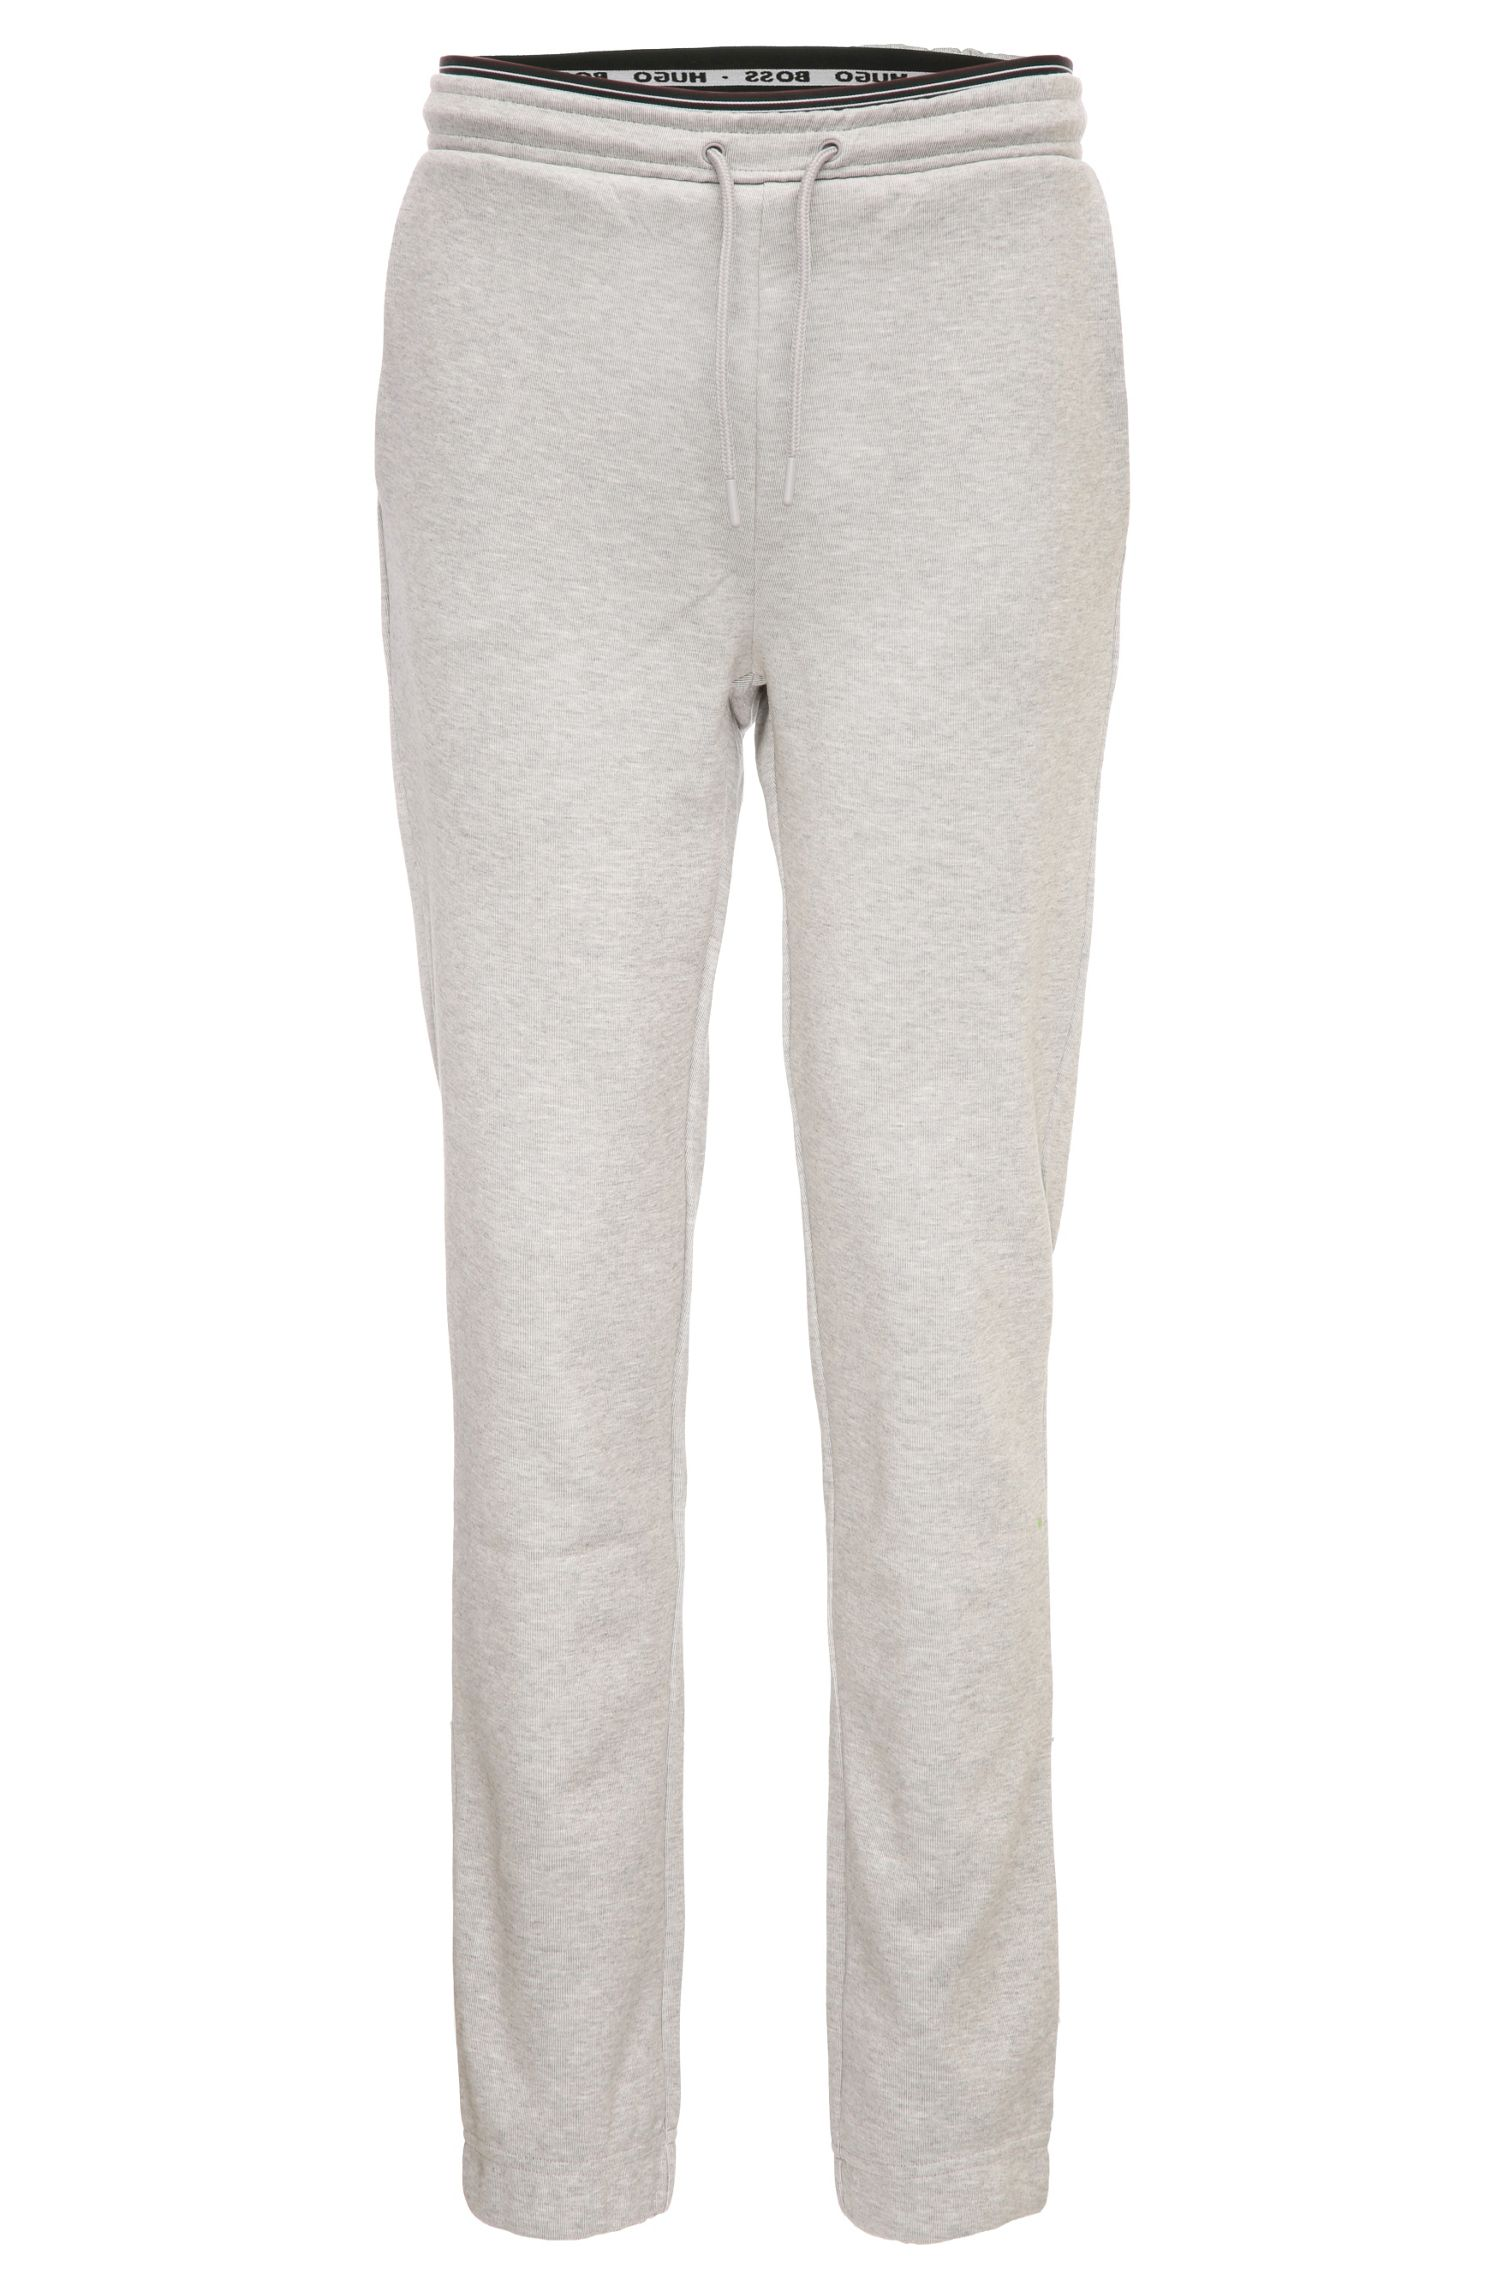 Comfort-fit drawstring trousers in cotton blend: 'Heacho'